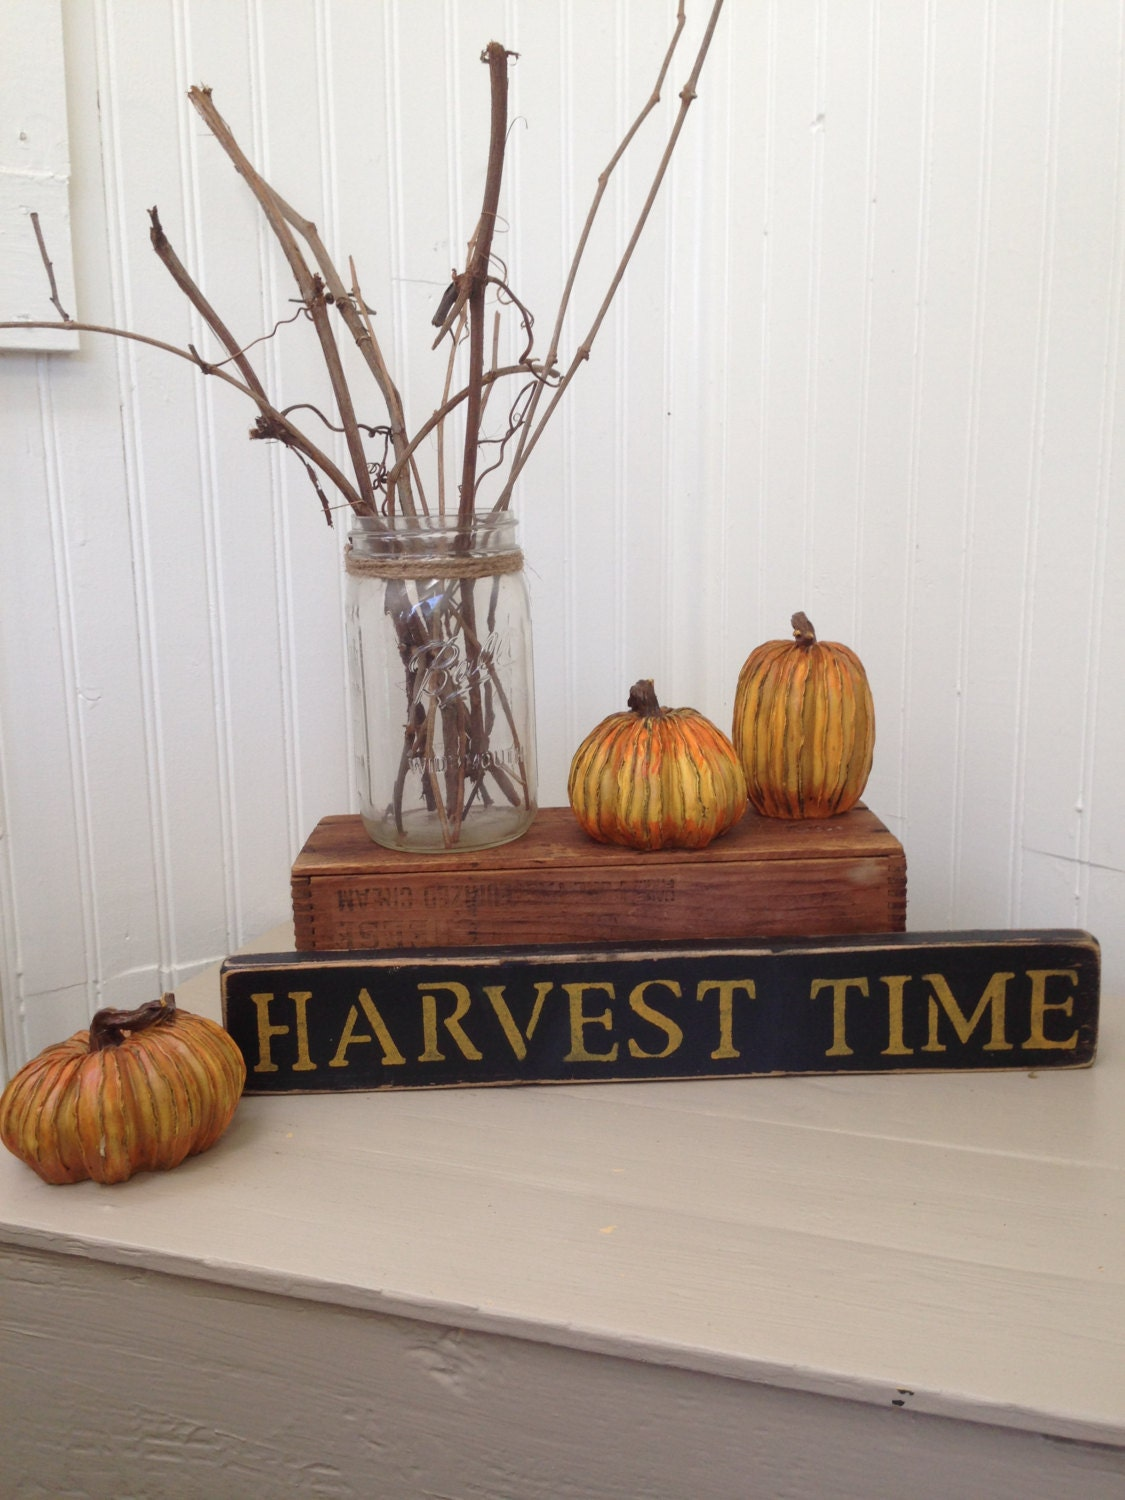 Harvest Sign On Barnwood For Fall Front Porch Decor: Wooden Harvest Time Sign Rustic Fall Decor